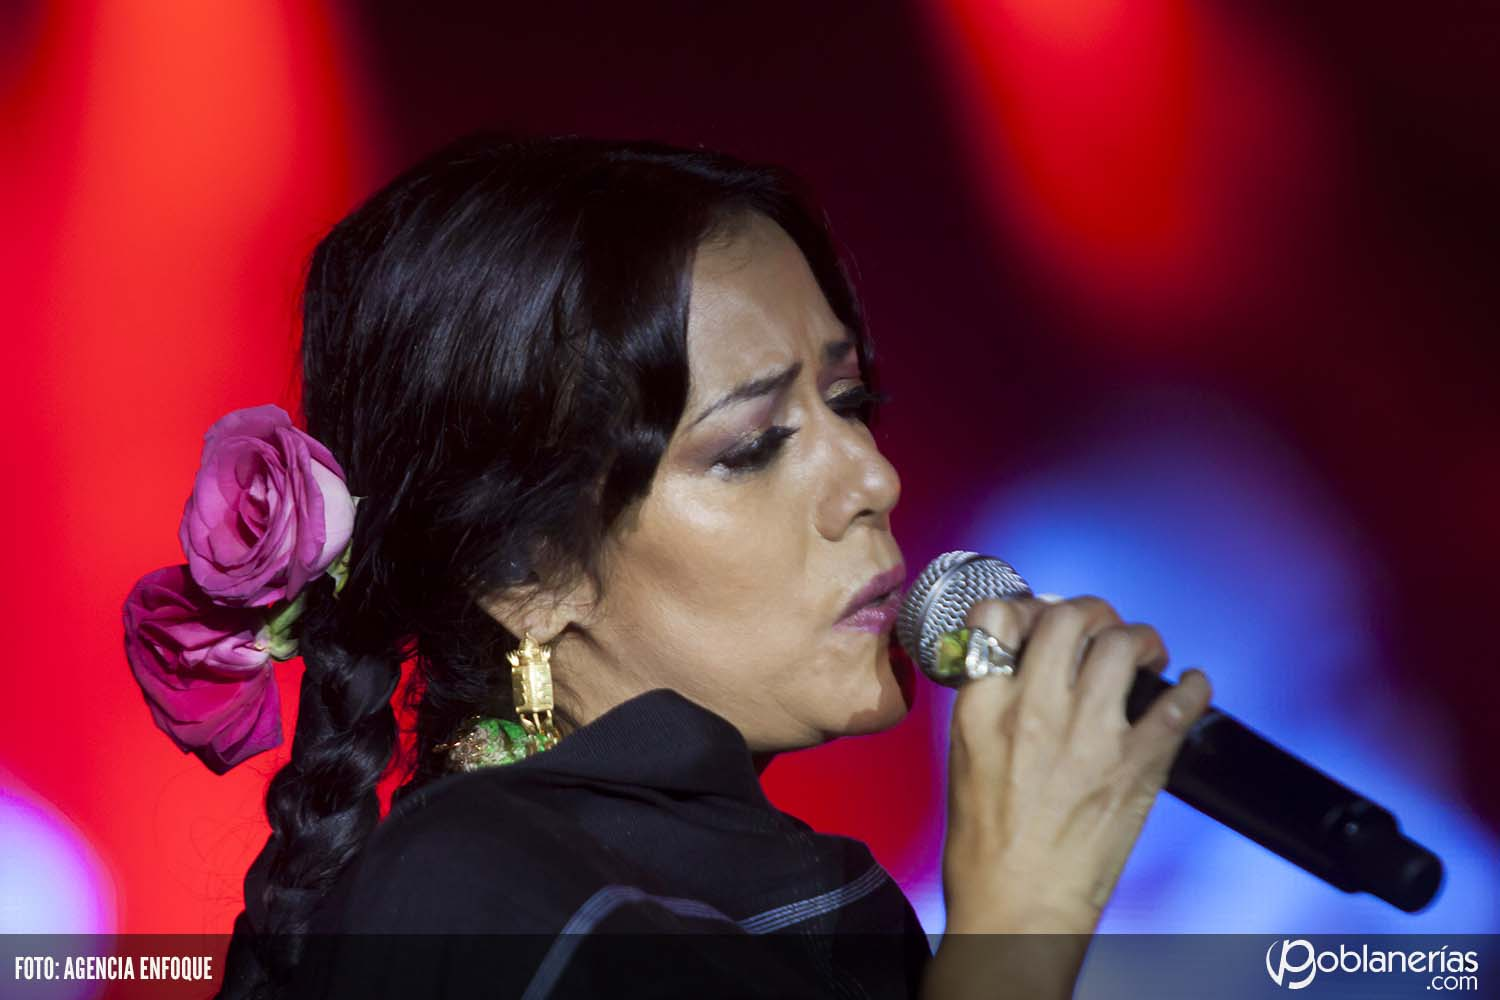 Estrena video Lila Downs de su sencillo